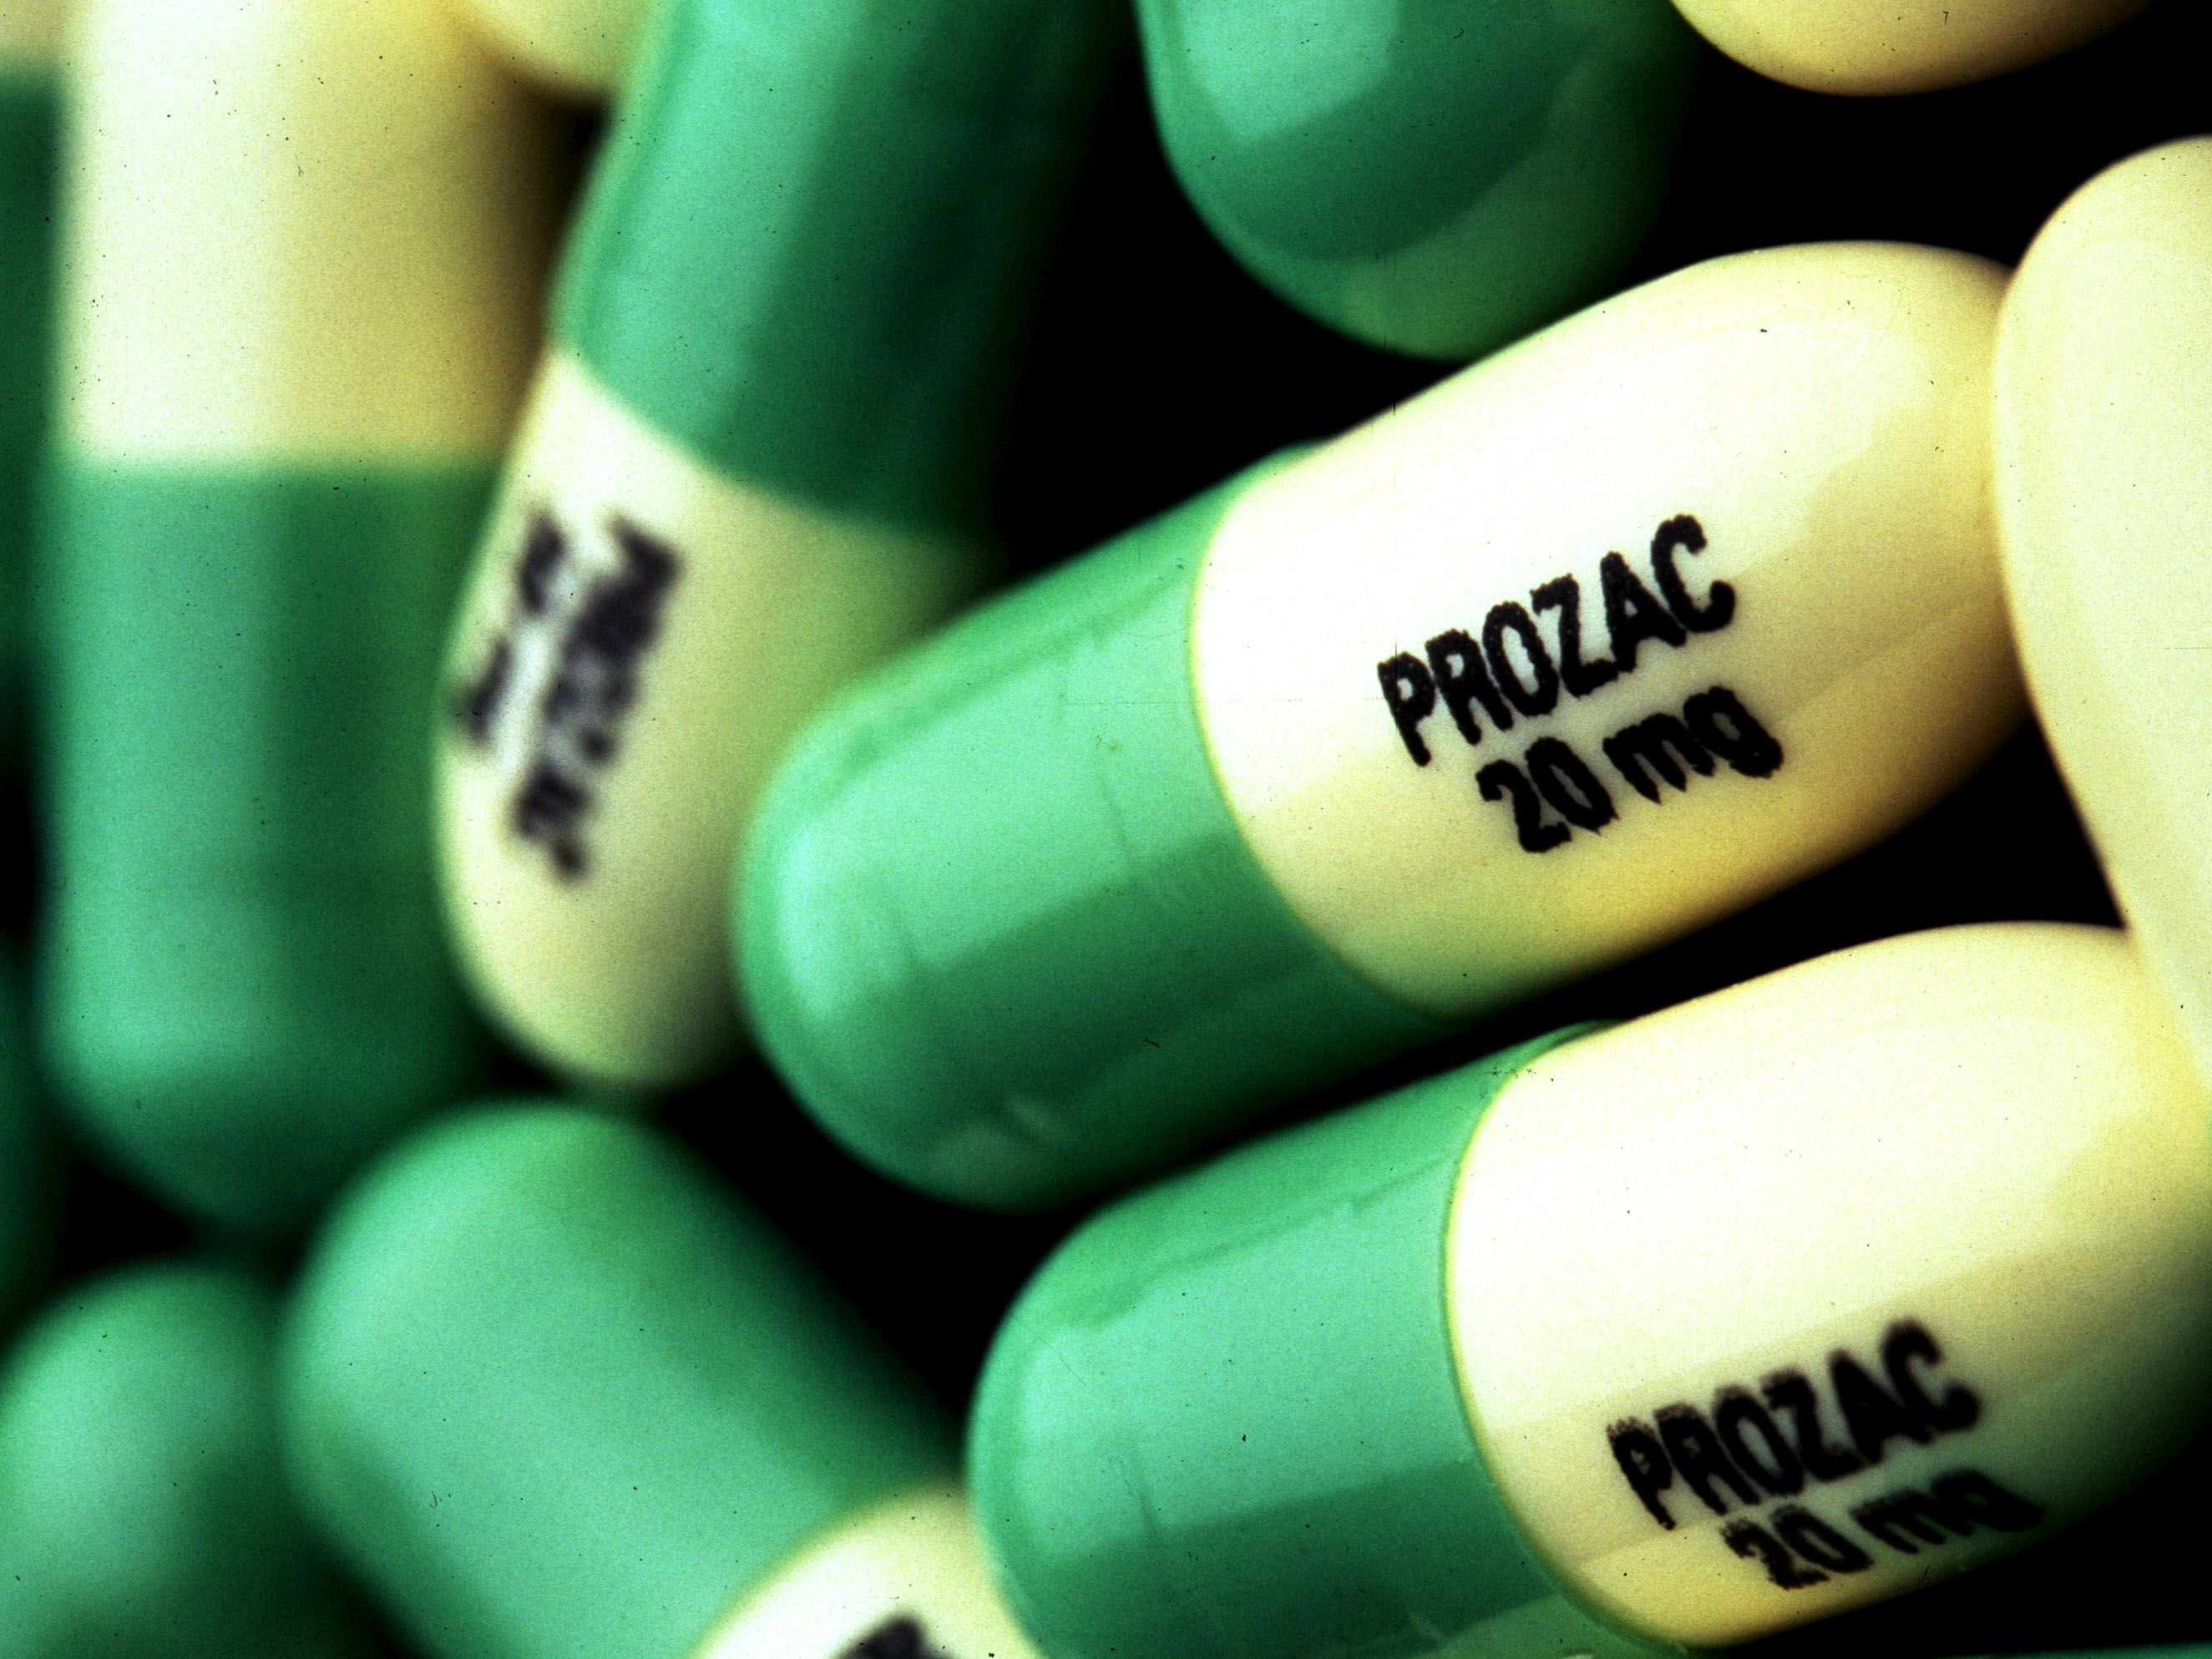 Does Taking Prozac Cause Weight Gain?